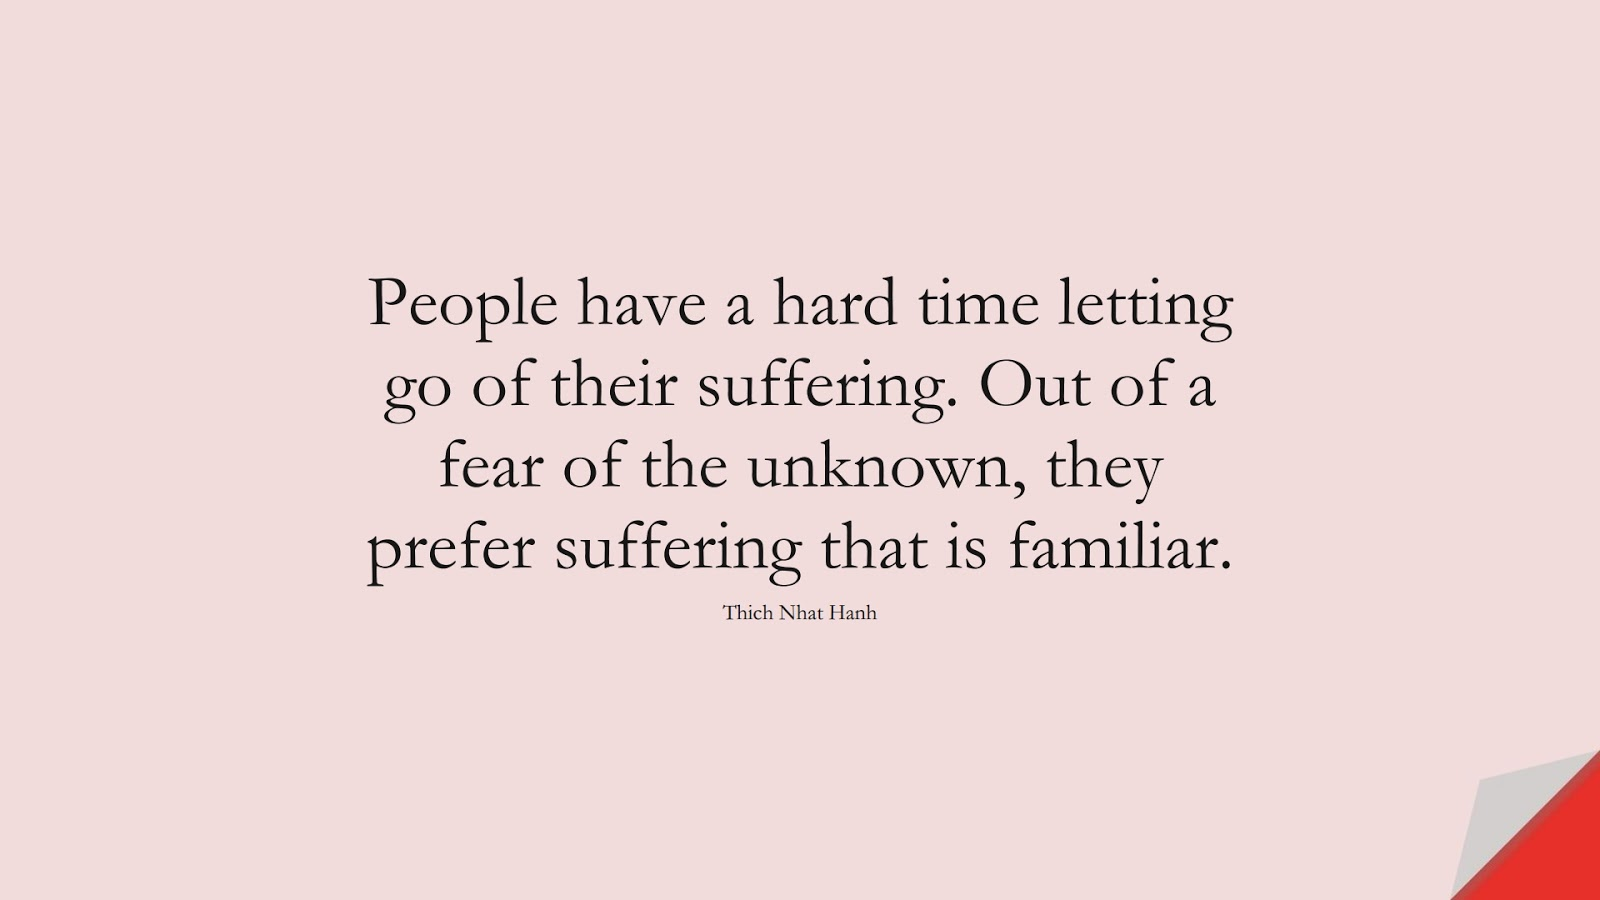 People have a hard time letting go of their suffering. Out of a fear of the unknown, they prefer suffering that is familiar. (Thich Nhat Hanh);  #HealthQuotes